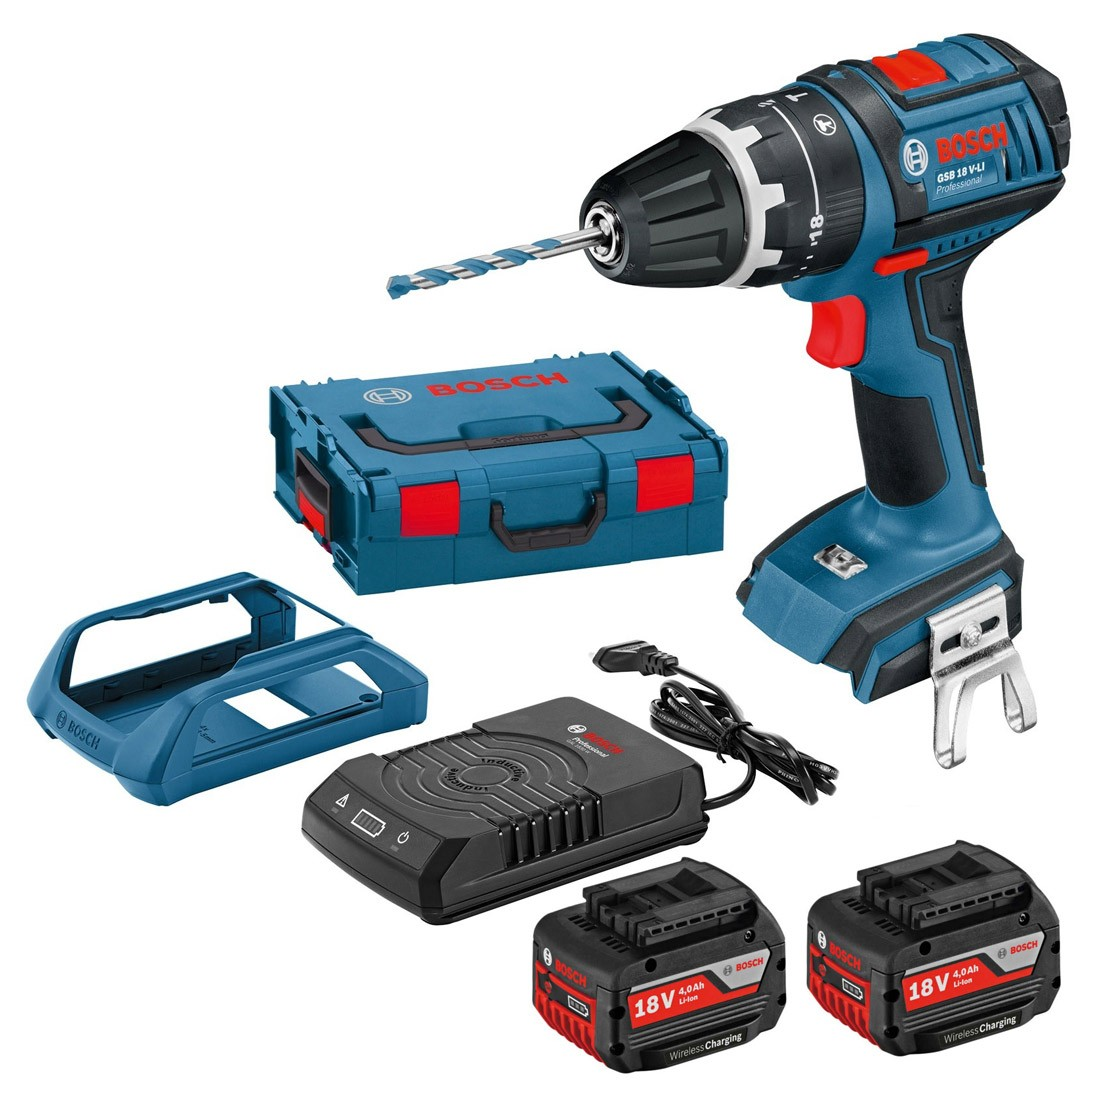 Bosch GSB 18 V-LI Combi Drill inc 2x 4.0Ah WIRELESS CHARGING 060186717L